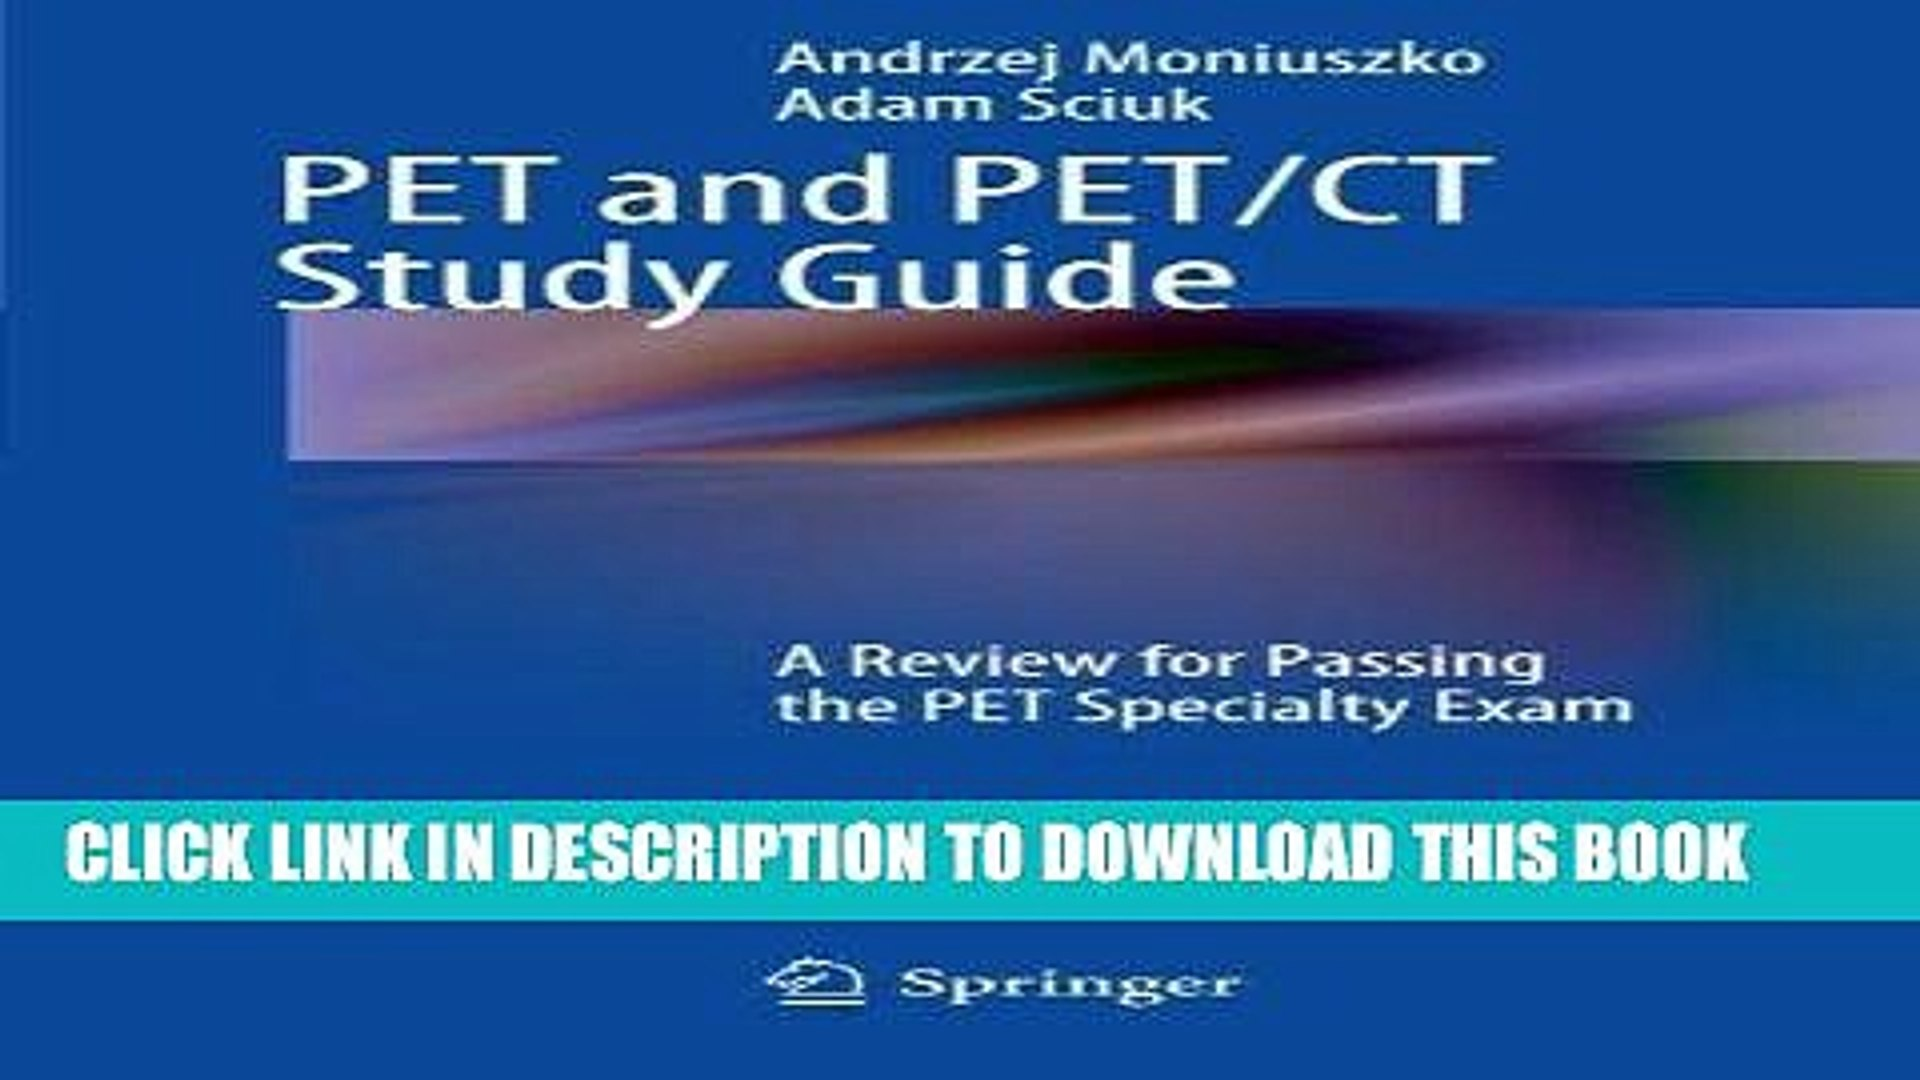 [READ] Kindle PET and PET/CT Study Guide: A Review for Passing the PET Specialty Exam Audiobook